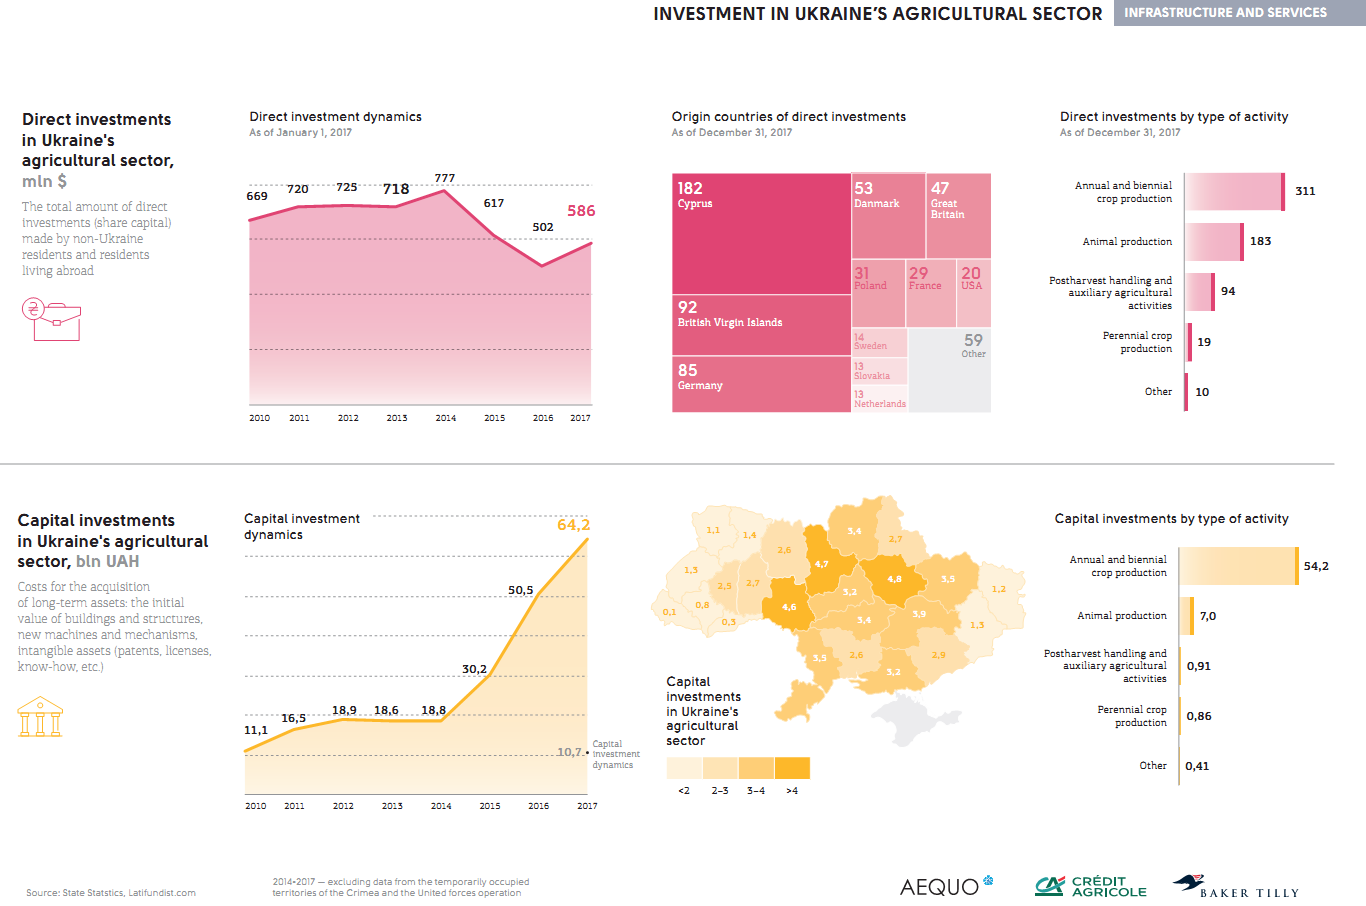 Investment in Ukraine's agricultural sector (click for full resolution)